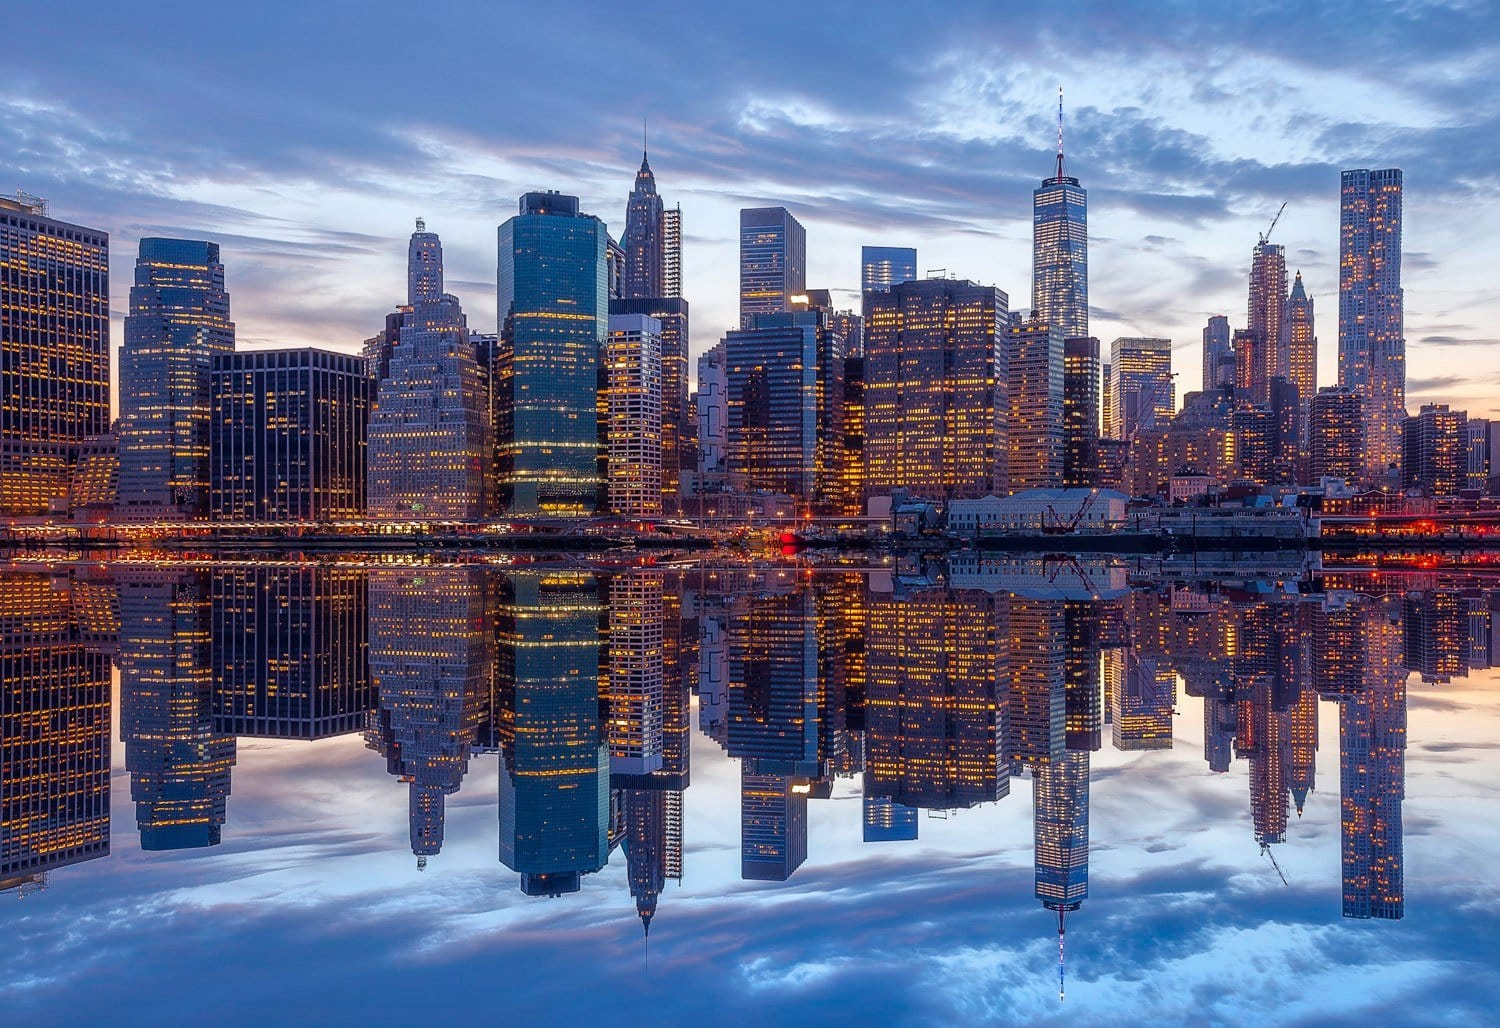 HDR Photography Reflections New York City